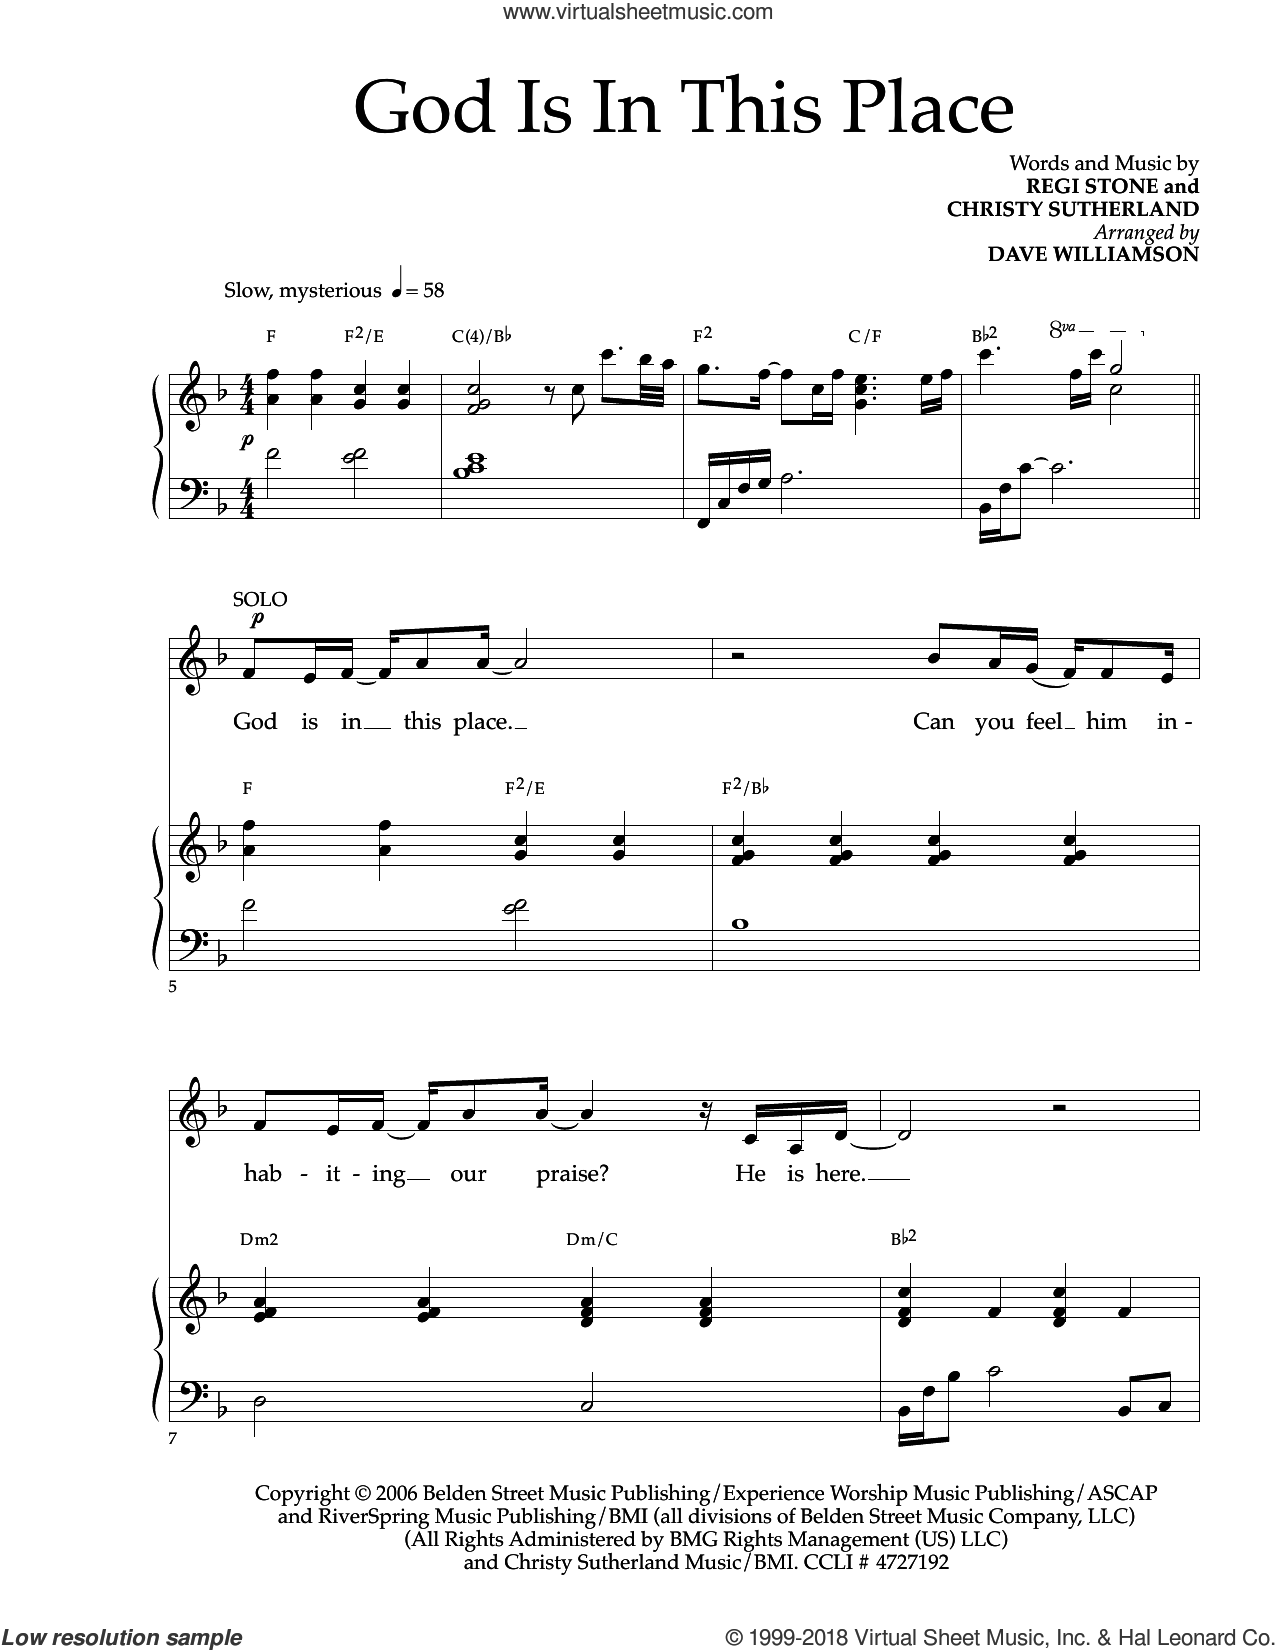 God Is In This Place sheet music for choir (SATB: soprano, alto, tenor, bass) by Regi Stone and Christy Sutherland, intermediate